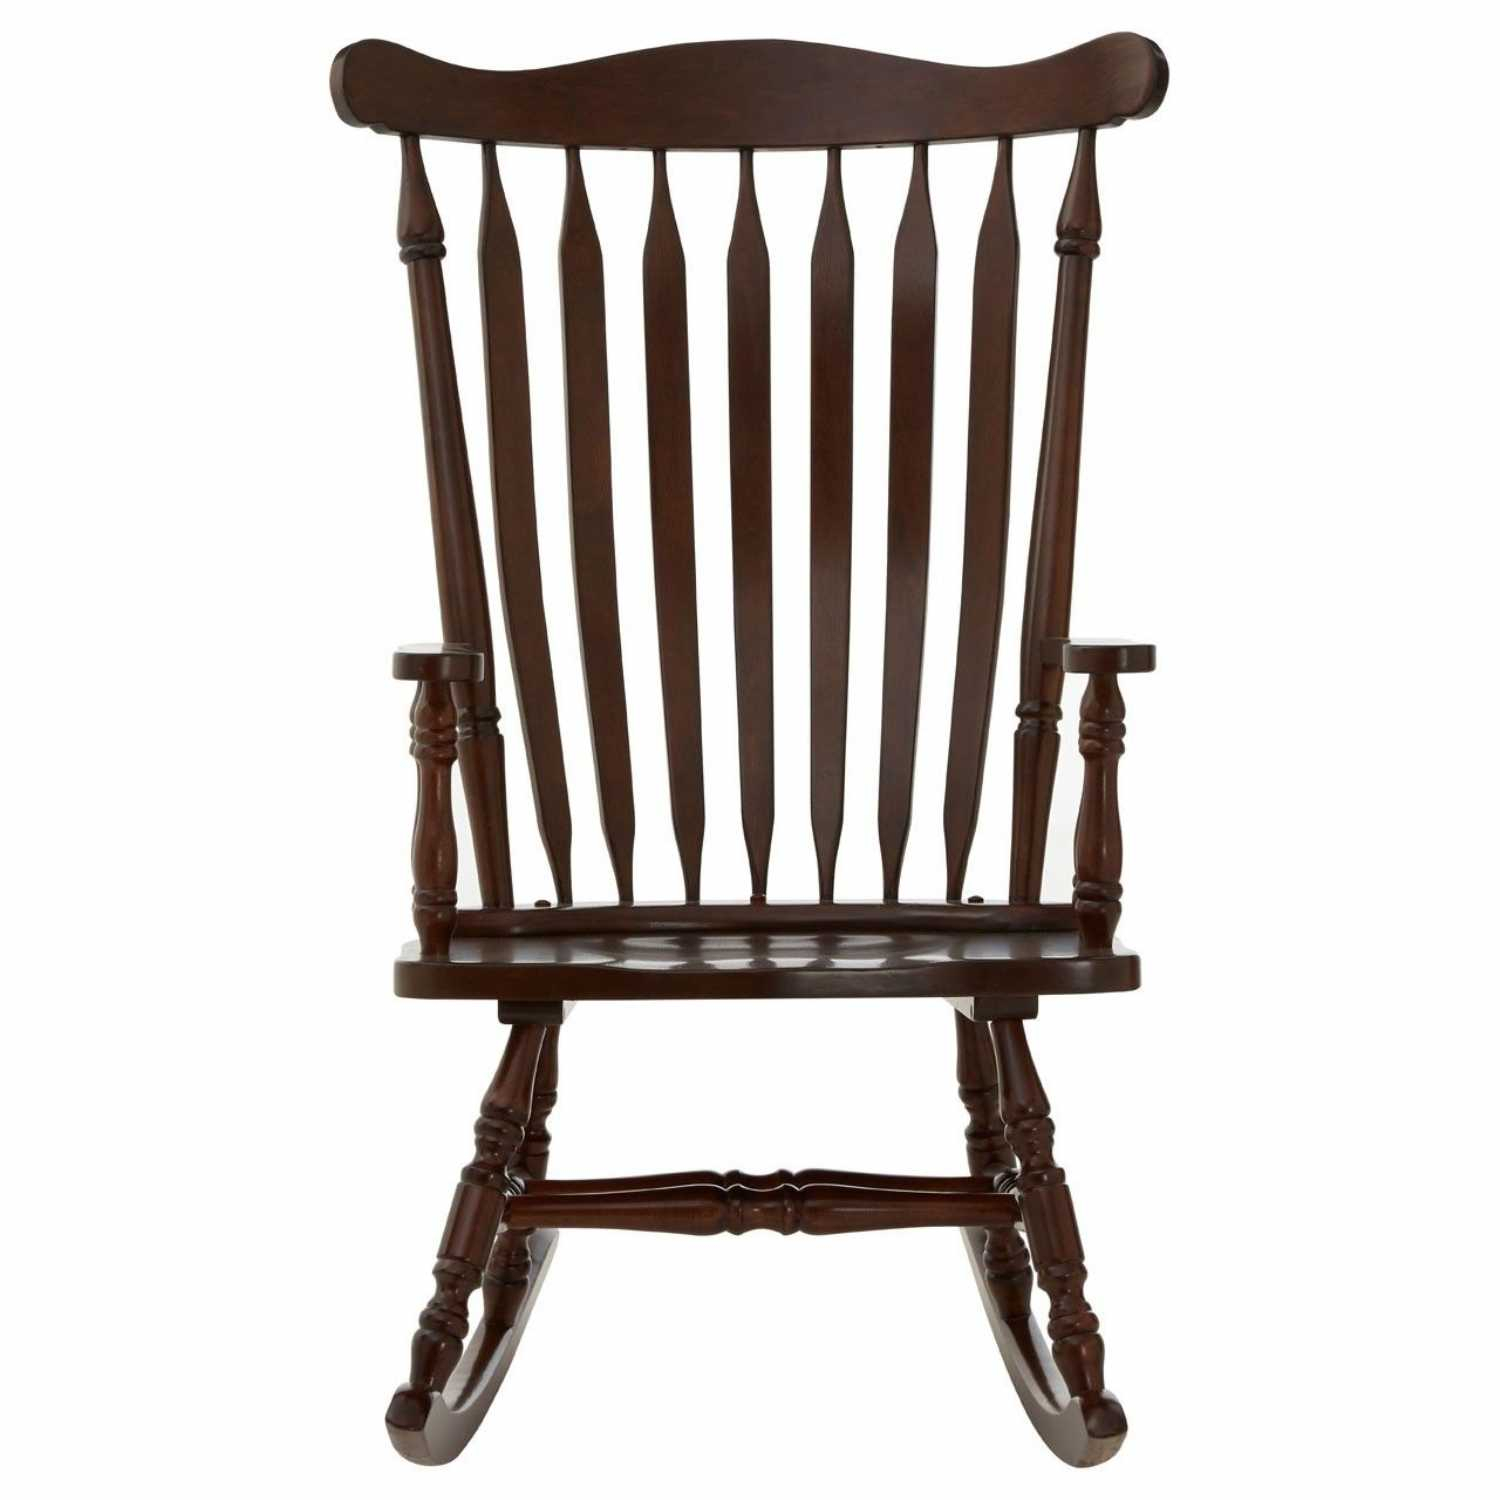 Traditional Espresso Colour Rubberwood Robust Relax Rocking Chair Throughout Espresso Brown Rocking Chairs (#18 of 20)